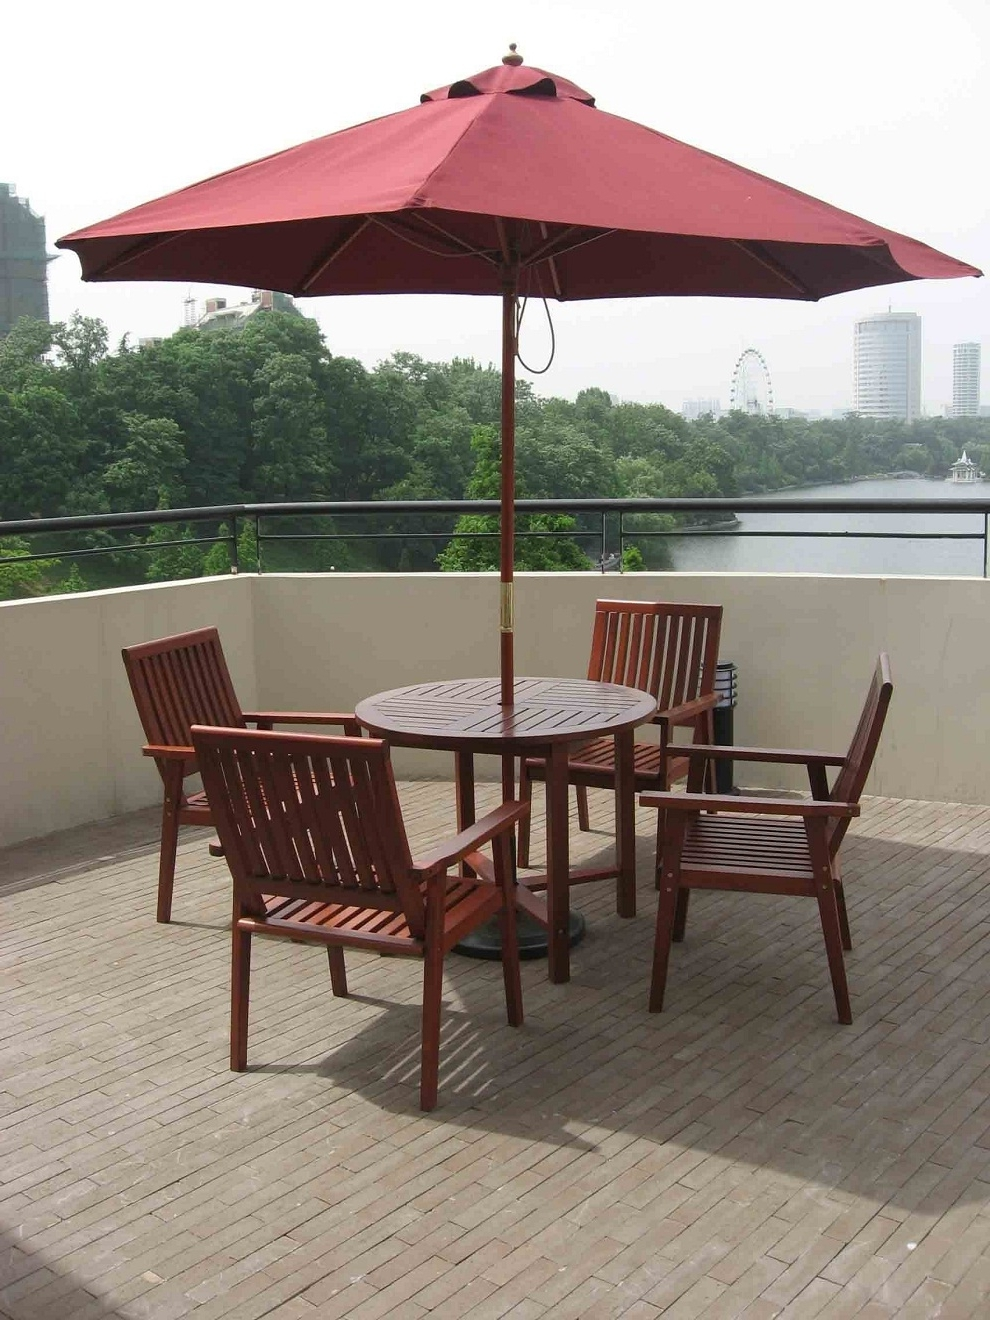 Patio Surprising Table With Umbrella Small Tables For Rent In Los Inside Most Popular Patio Umbrellas For Rent (View 19 of 20)